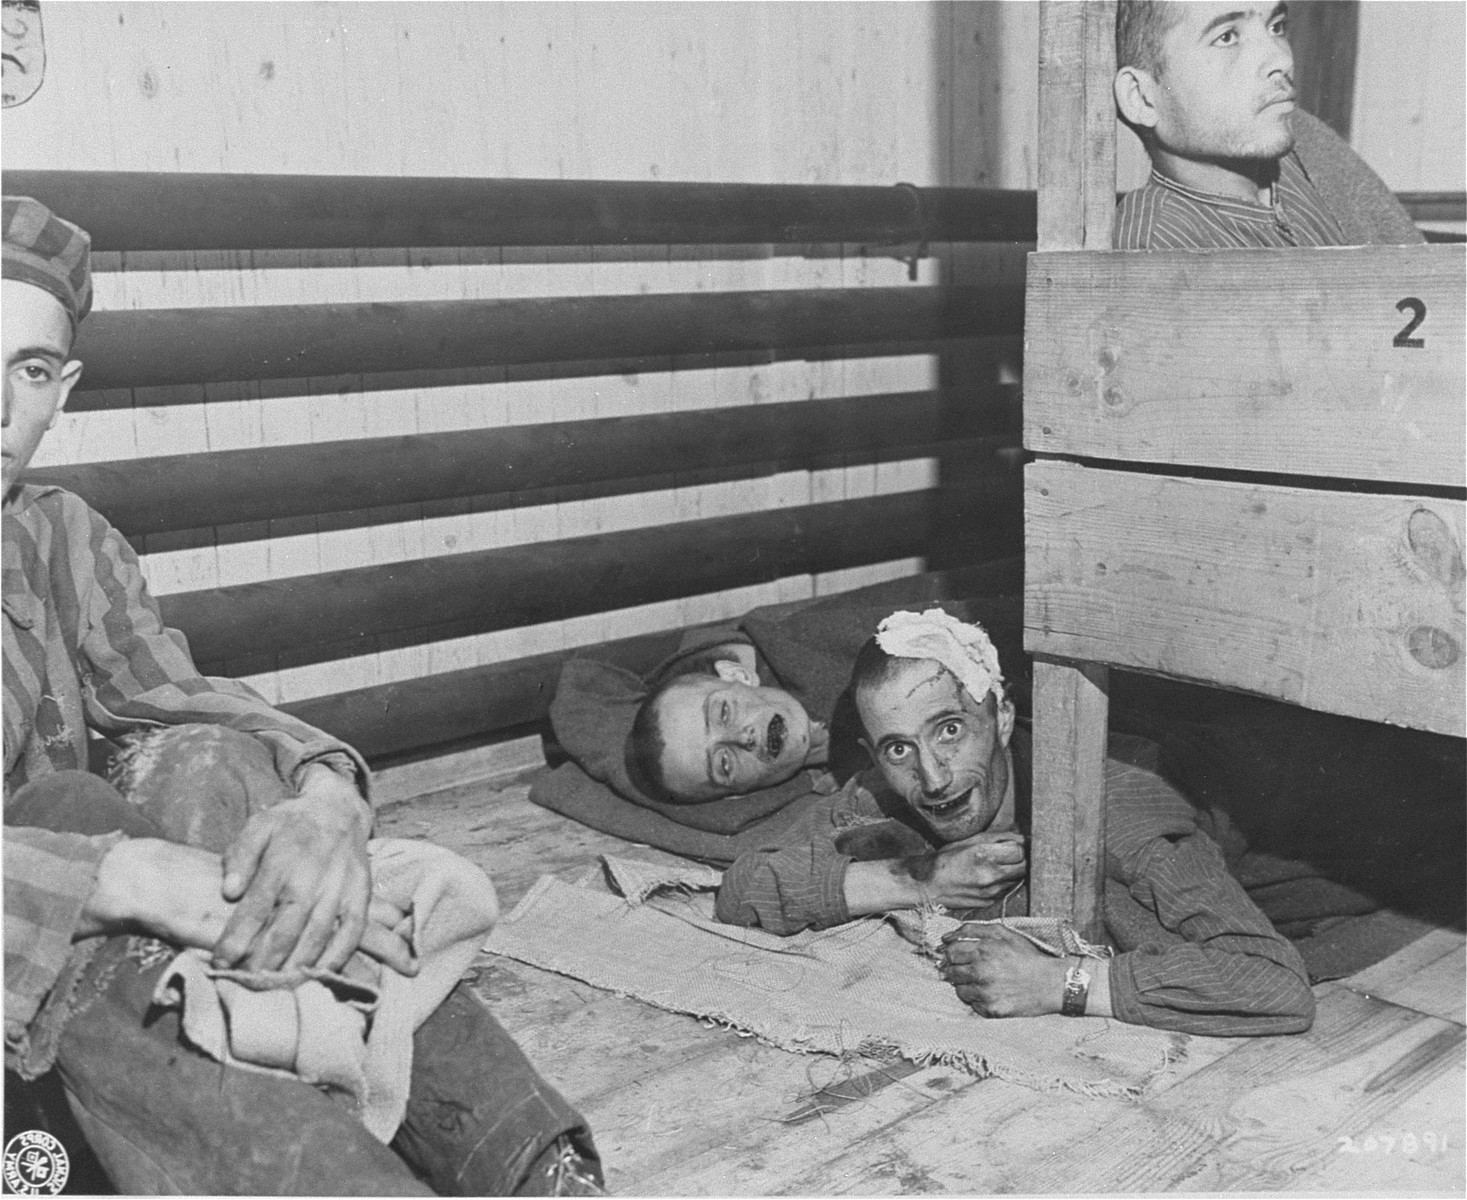 Survivors in the infirmary barracks for Jewish prisoners in the Ebensee concentration camp.  Those people who did not fit in the bunks were forced to sleep on the floor.